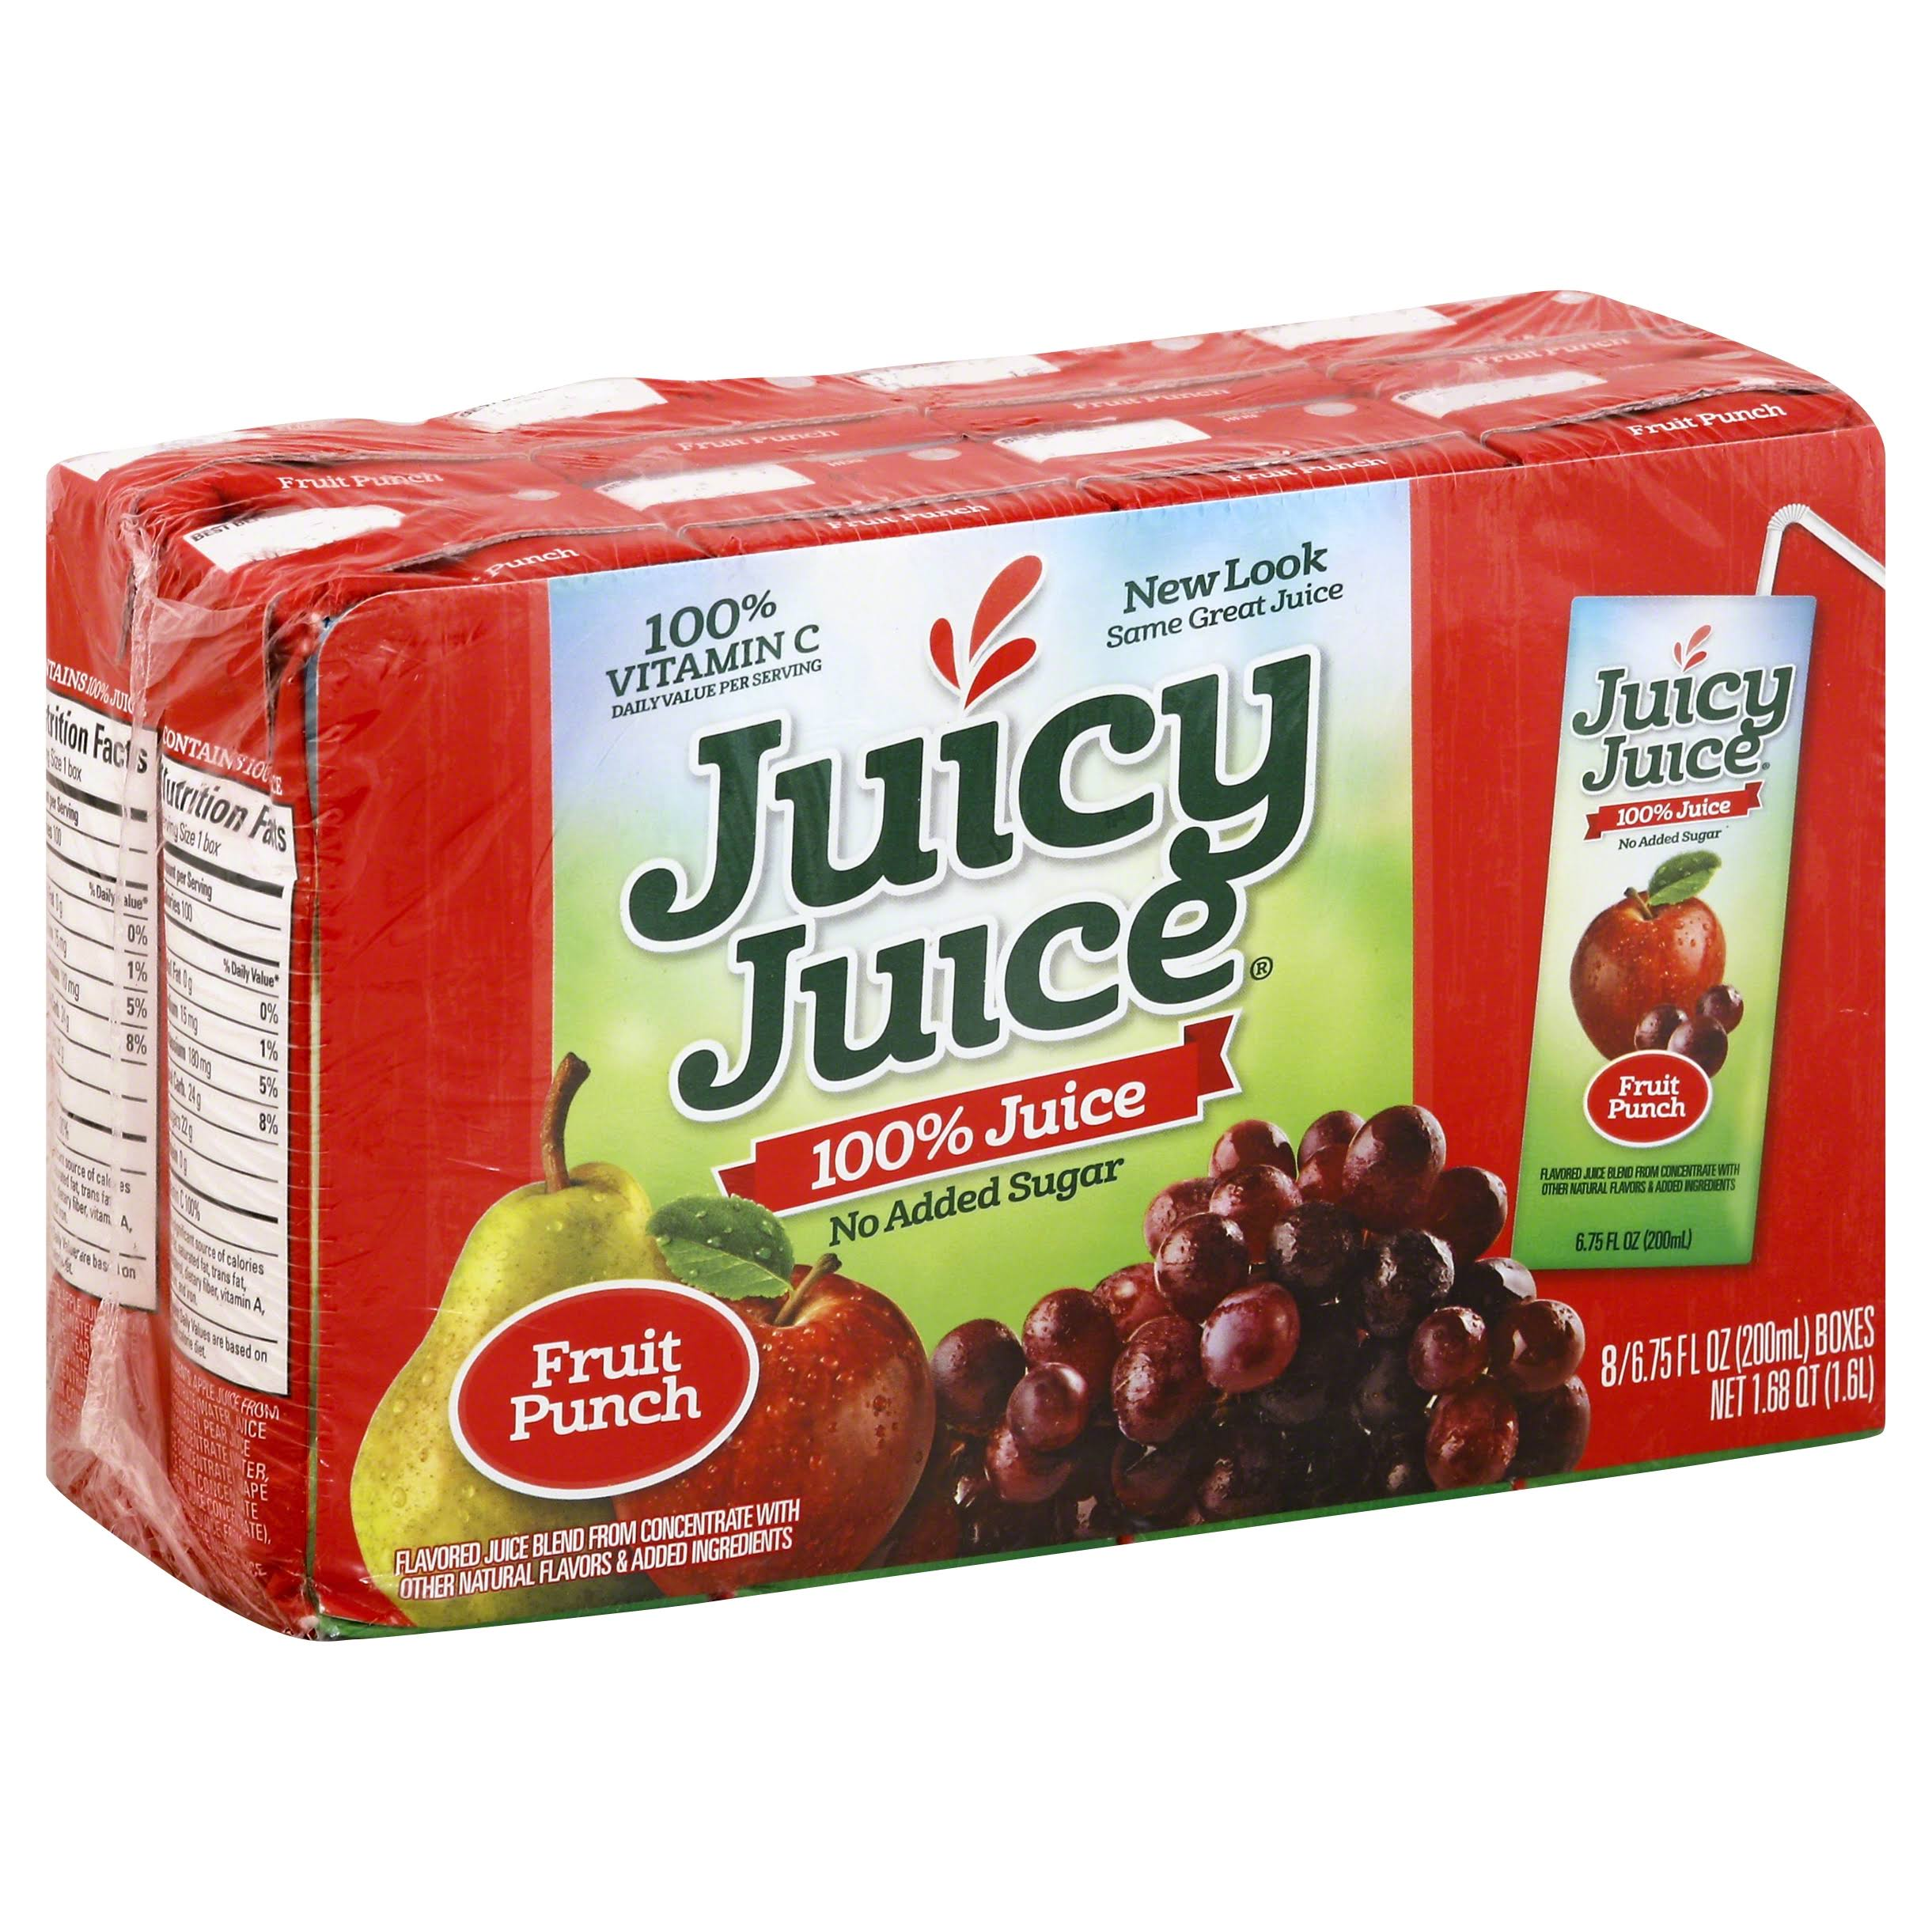 Juicy Juice 100% Juice - Fruit Punch, 6.75 fl oz, x8